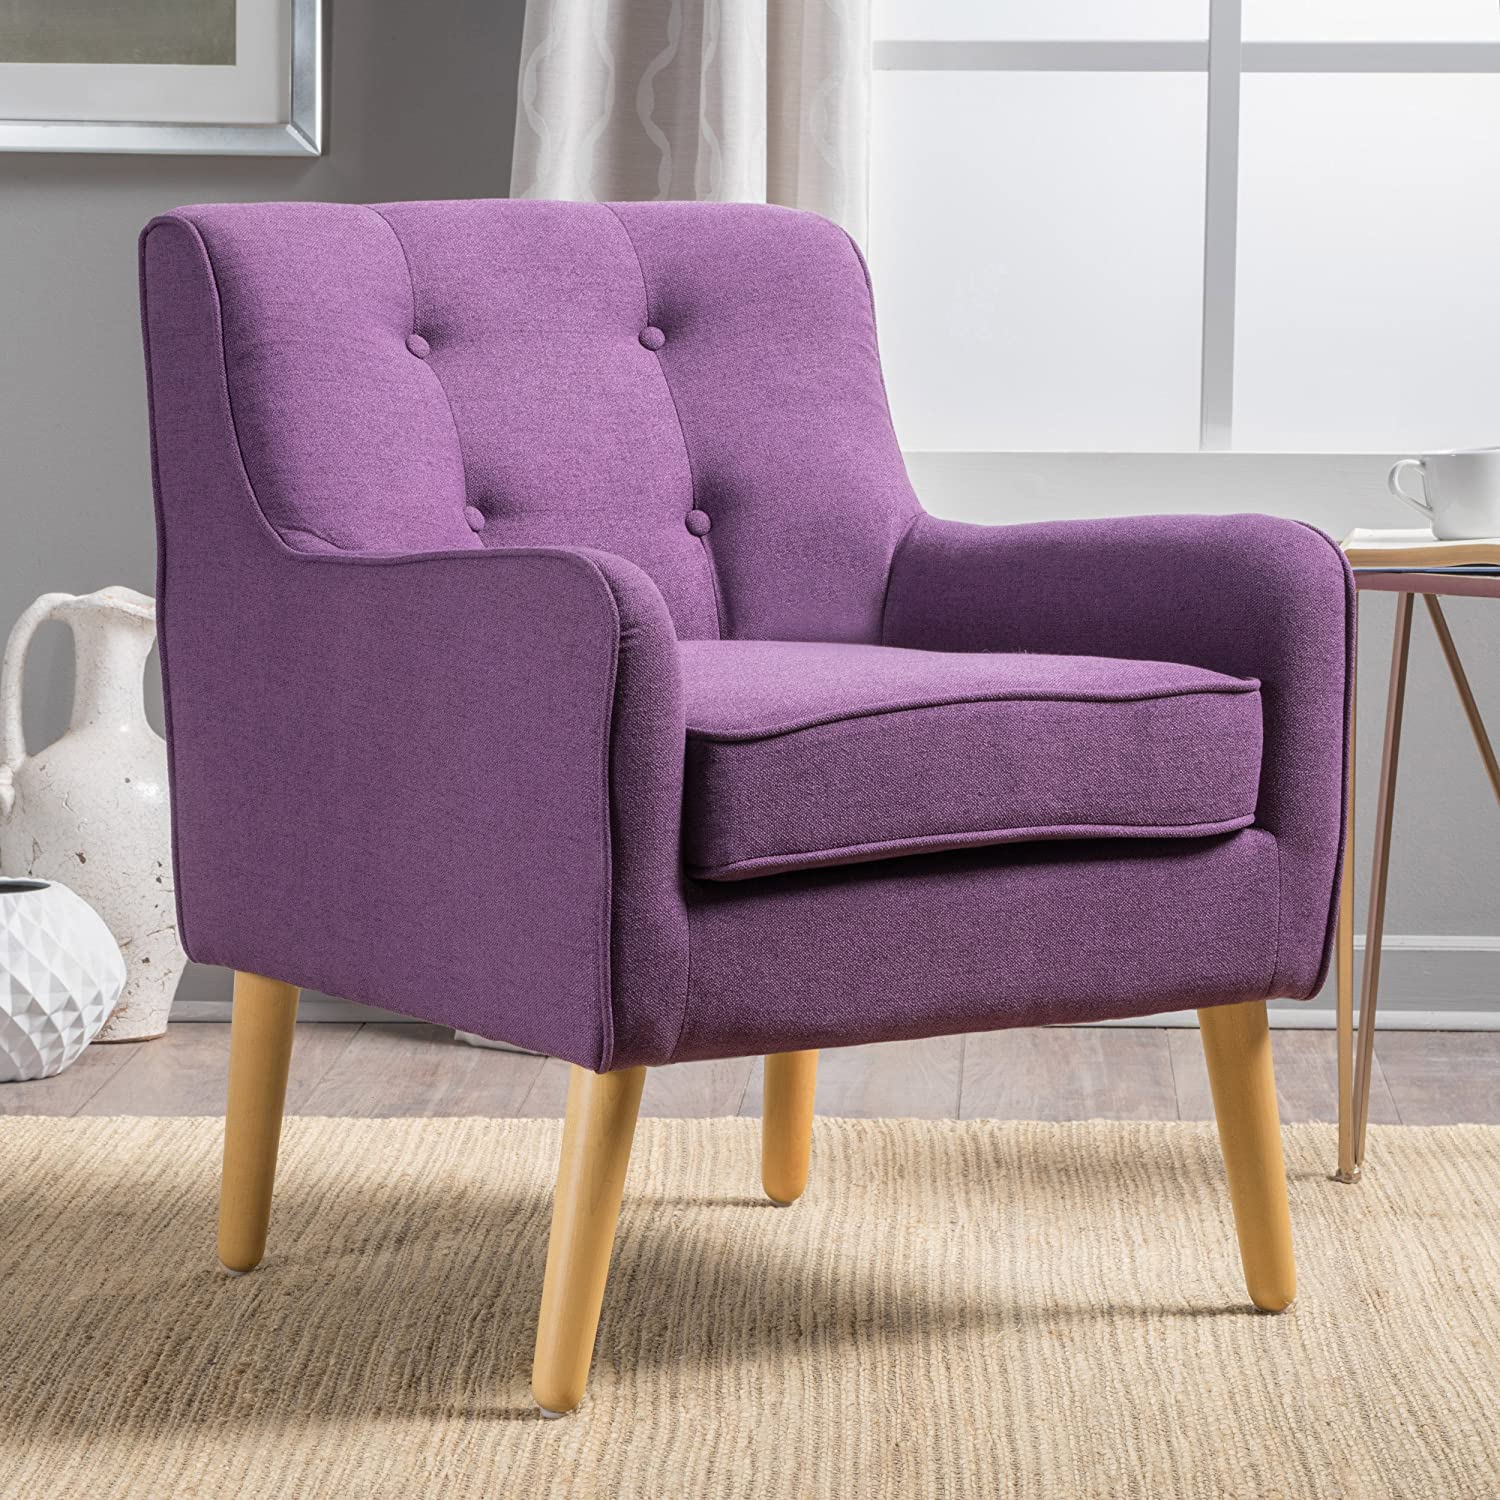 Purple Christopher Knight Home 300568 Felicity Mid-Century Button Tufted Fabric Arm Chair, Wasabi